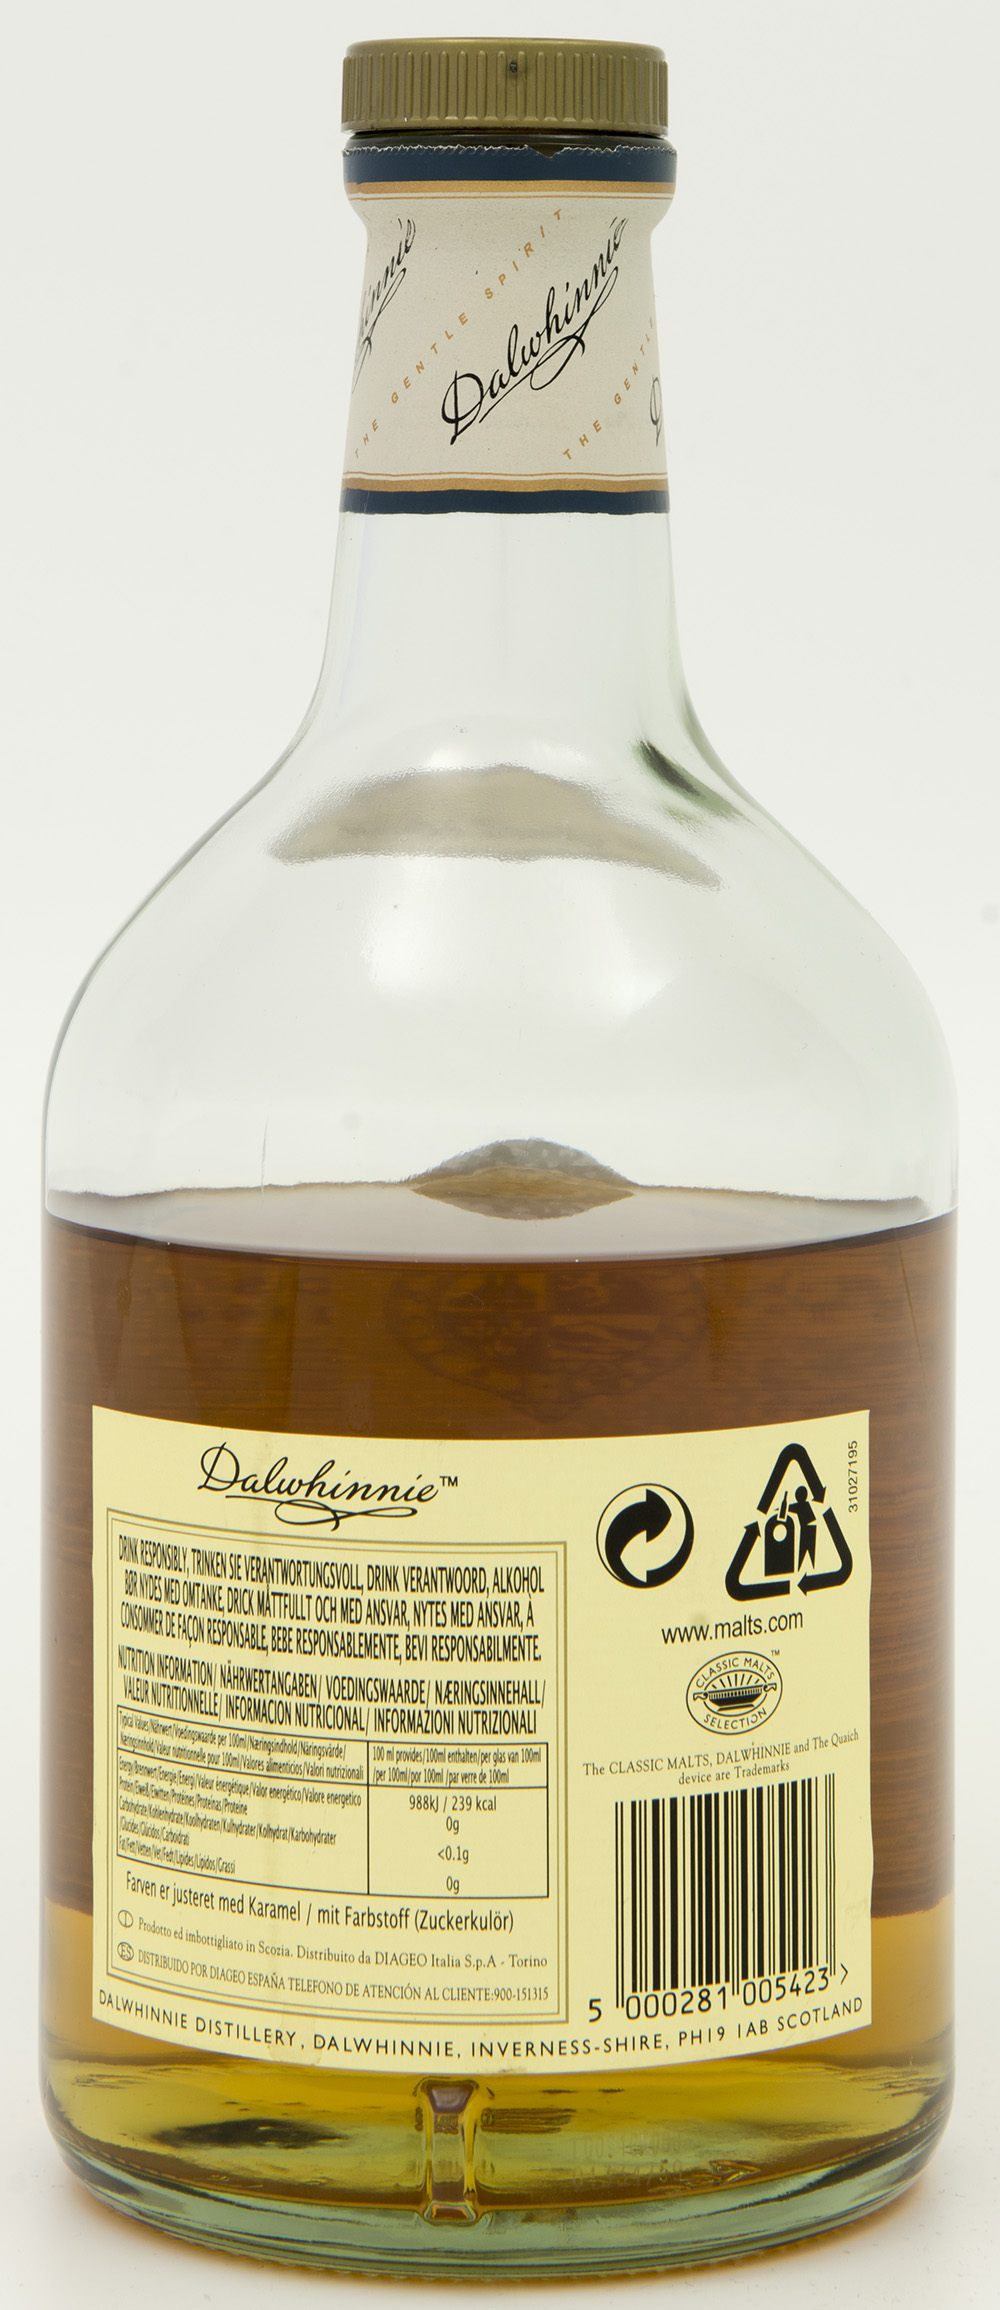 Billede: DSC_8170 - Dalwhinnie 15 - bottle back.jpg